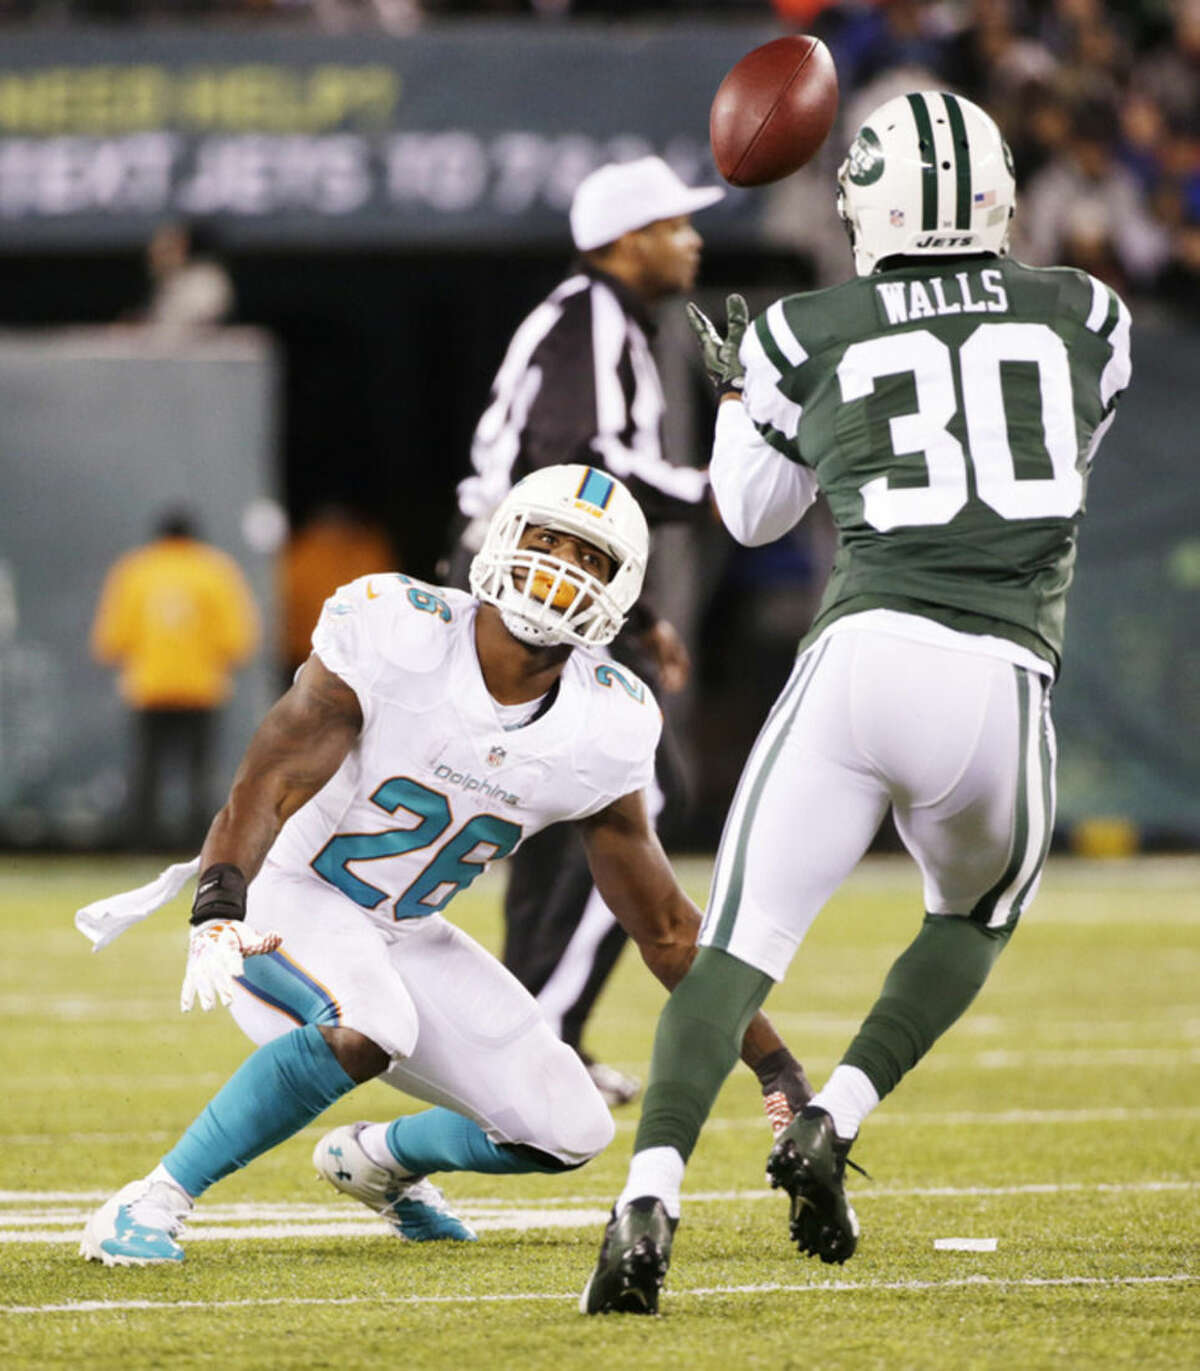 Miami Dolphins running back Lamar Miller (26) watches as New York Jets cornerback Darrin Walls (30) intercepts the ball after Miller tipped a pass during the third quarter of an NFL football game, Monday, Dec. 1, 2014, in East Rutherford, N.J. (AP Photo/Julio Cortez)